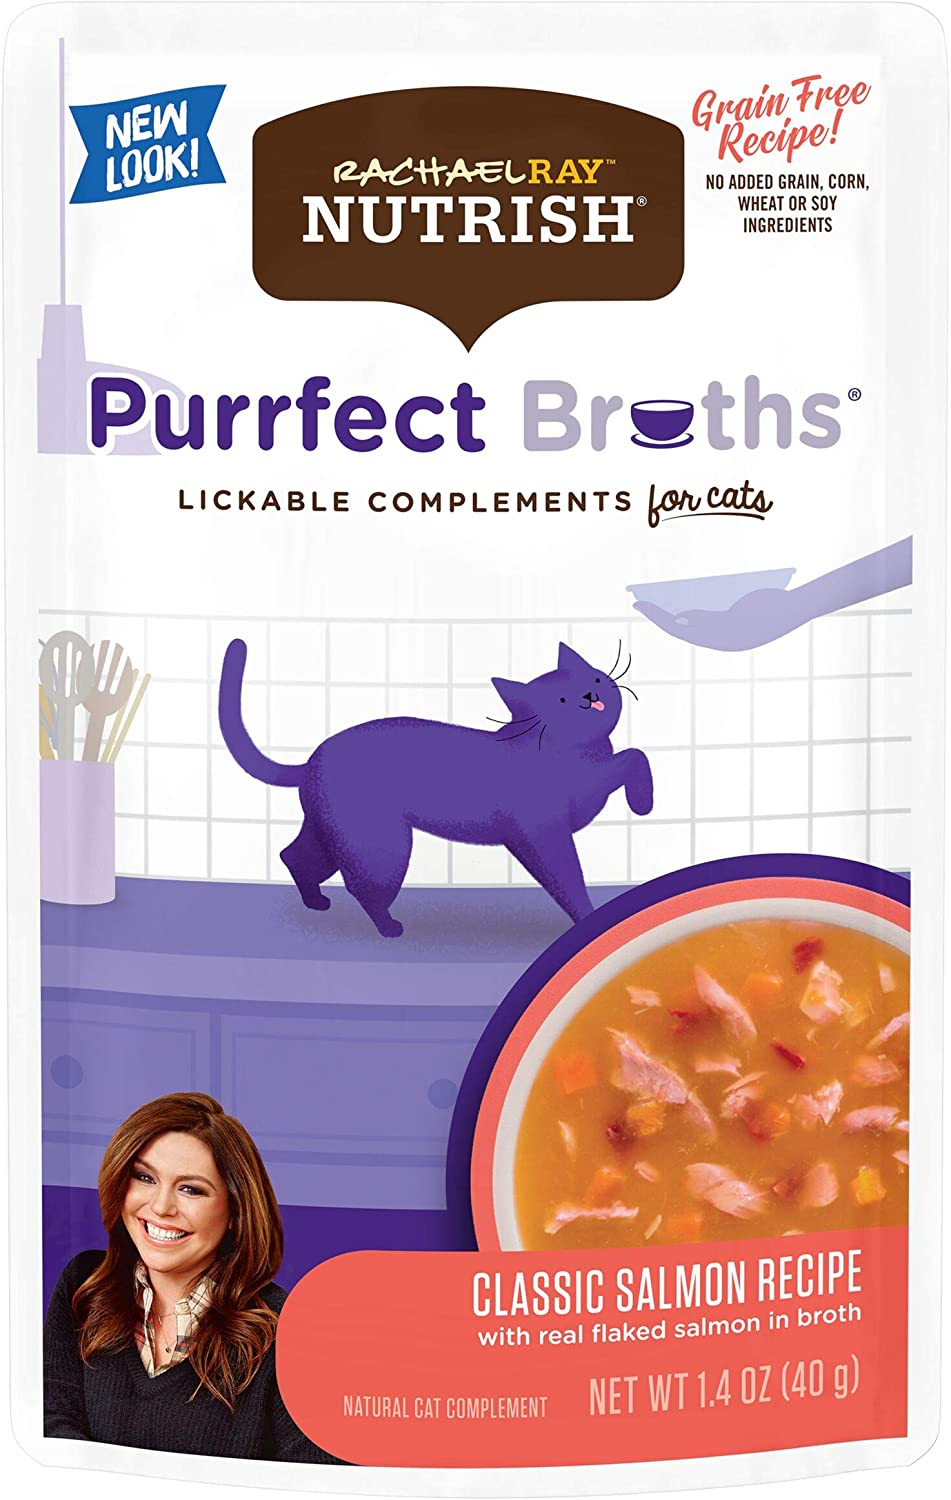 Rachael Ray Nutrish Purrfect Broths Natural Wet Cat Food, Classic Salmon Recipe with Flaked Salmon & Veggies, 1.4 Ounce Pouch (Pack of 24), Grain Free (Packaging May Vary)